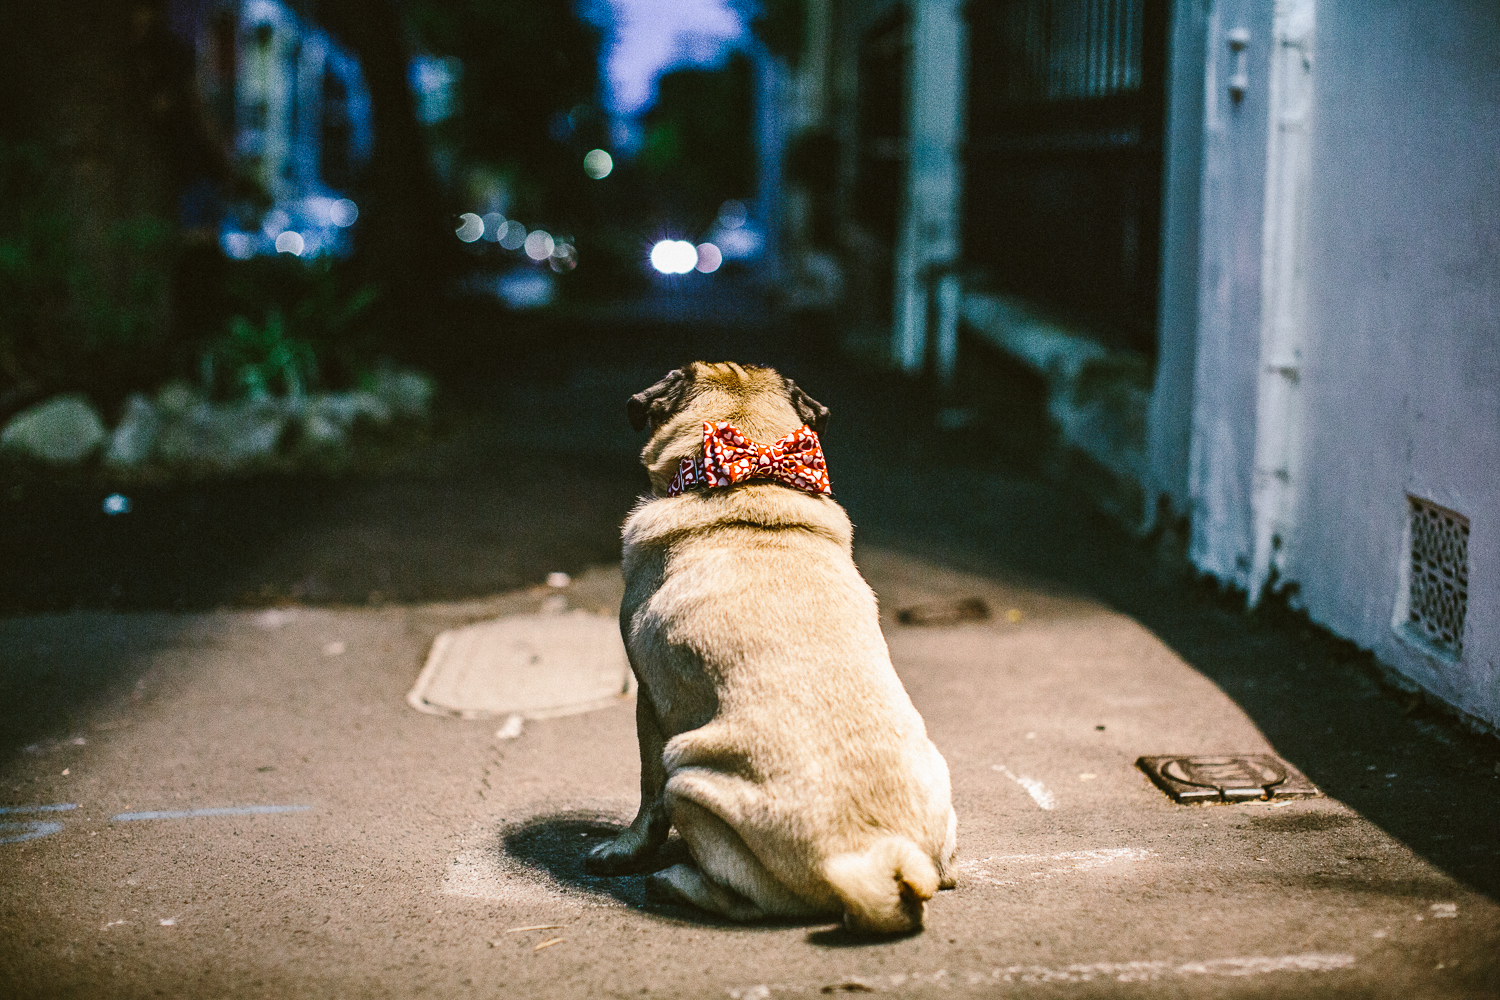 44_twoguineapigs_pet_photography_ohjaffa_vday_bowtie_collection_2015_1500.jpg